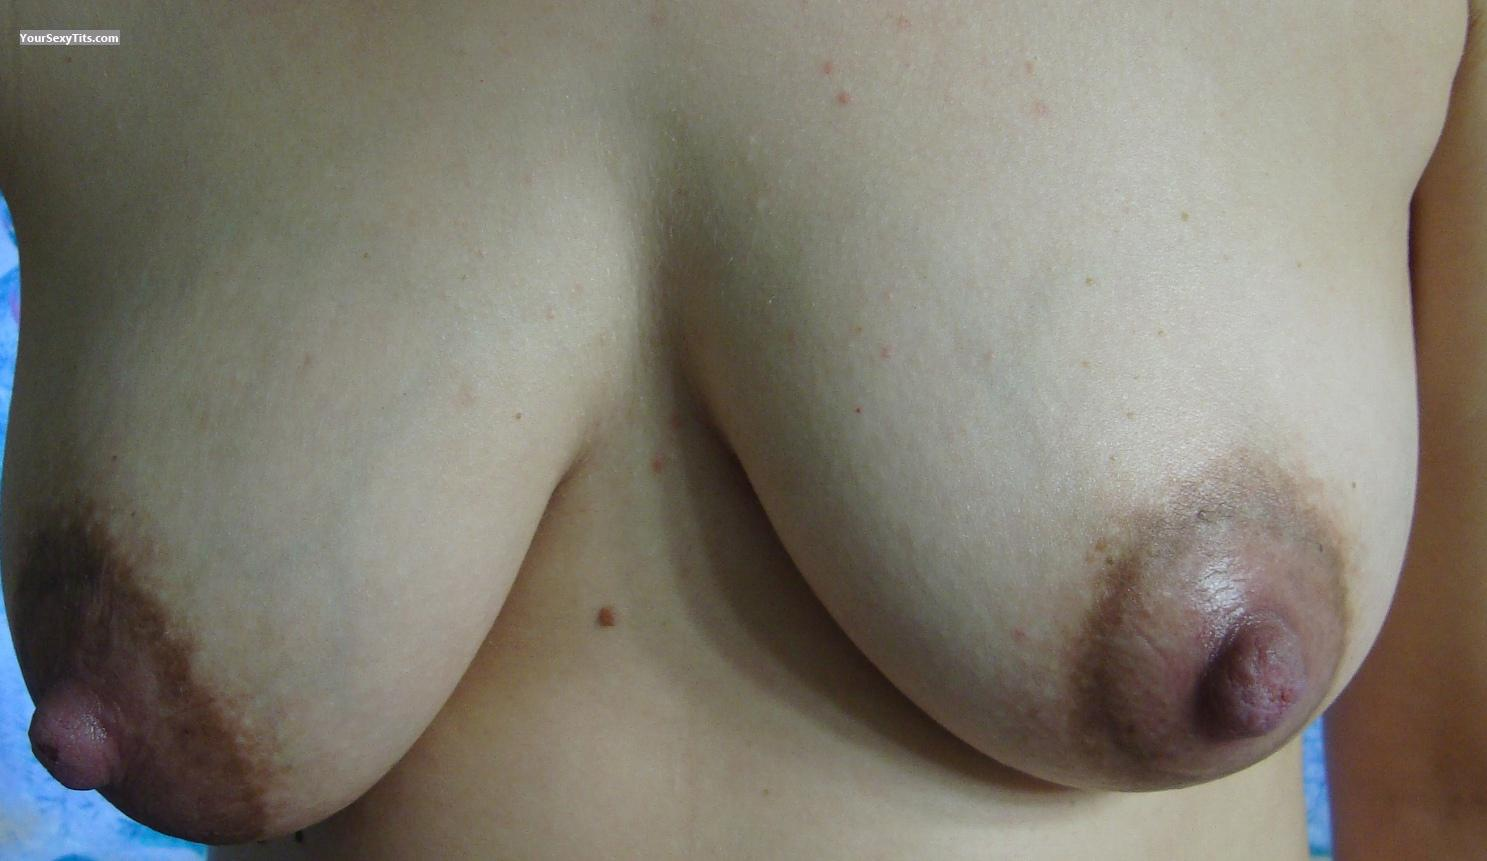 Medium Tits Of My Wife Selfie by Pcuser69